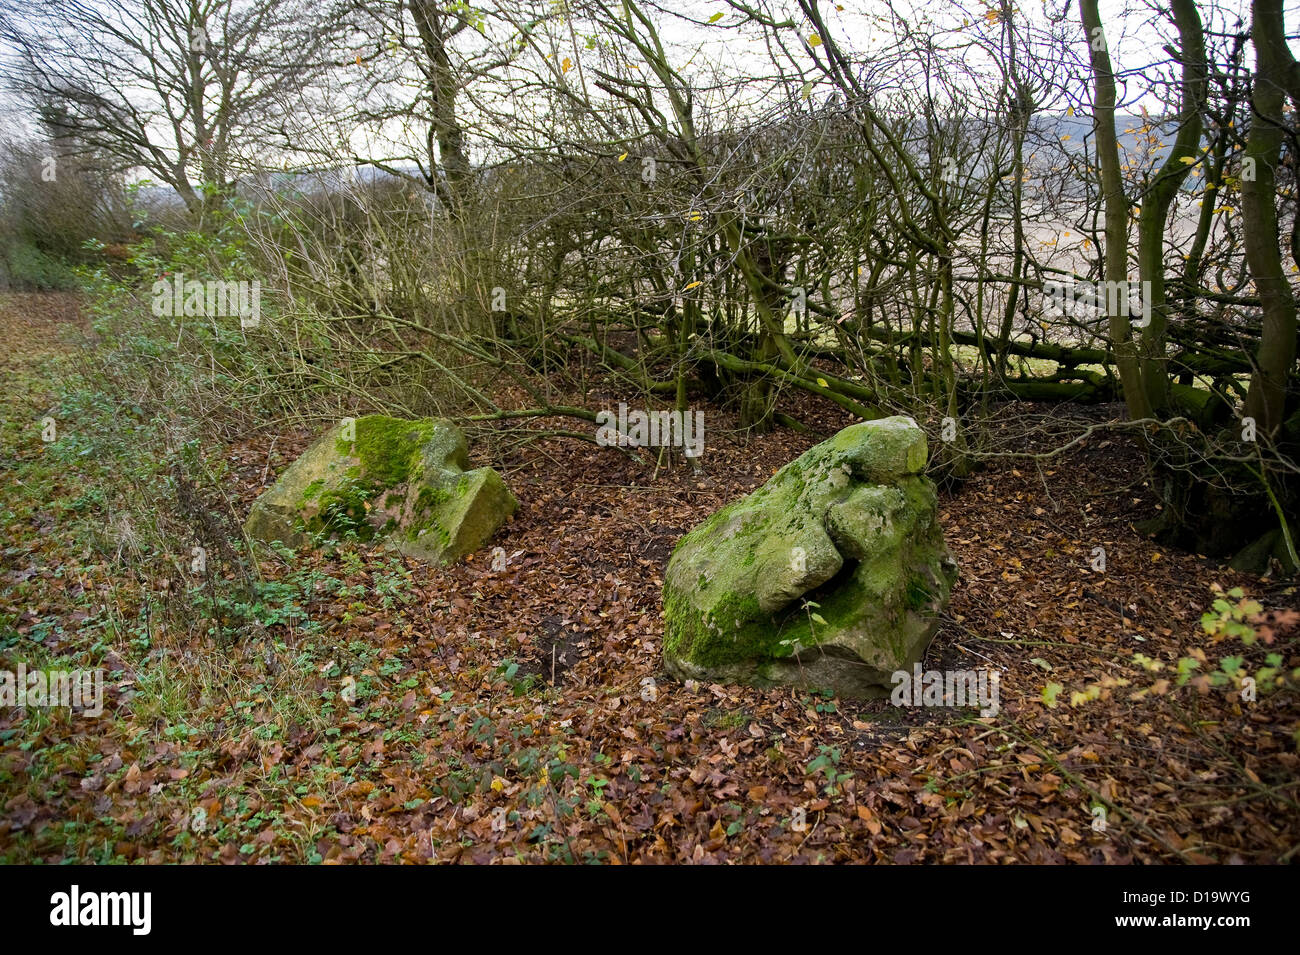 Large sarcen stones on the side of The Ridgeway National Trail near Chinnor, Buckinghamshire, UK - Stock Image